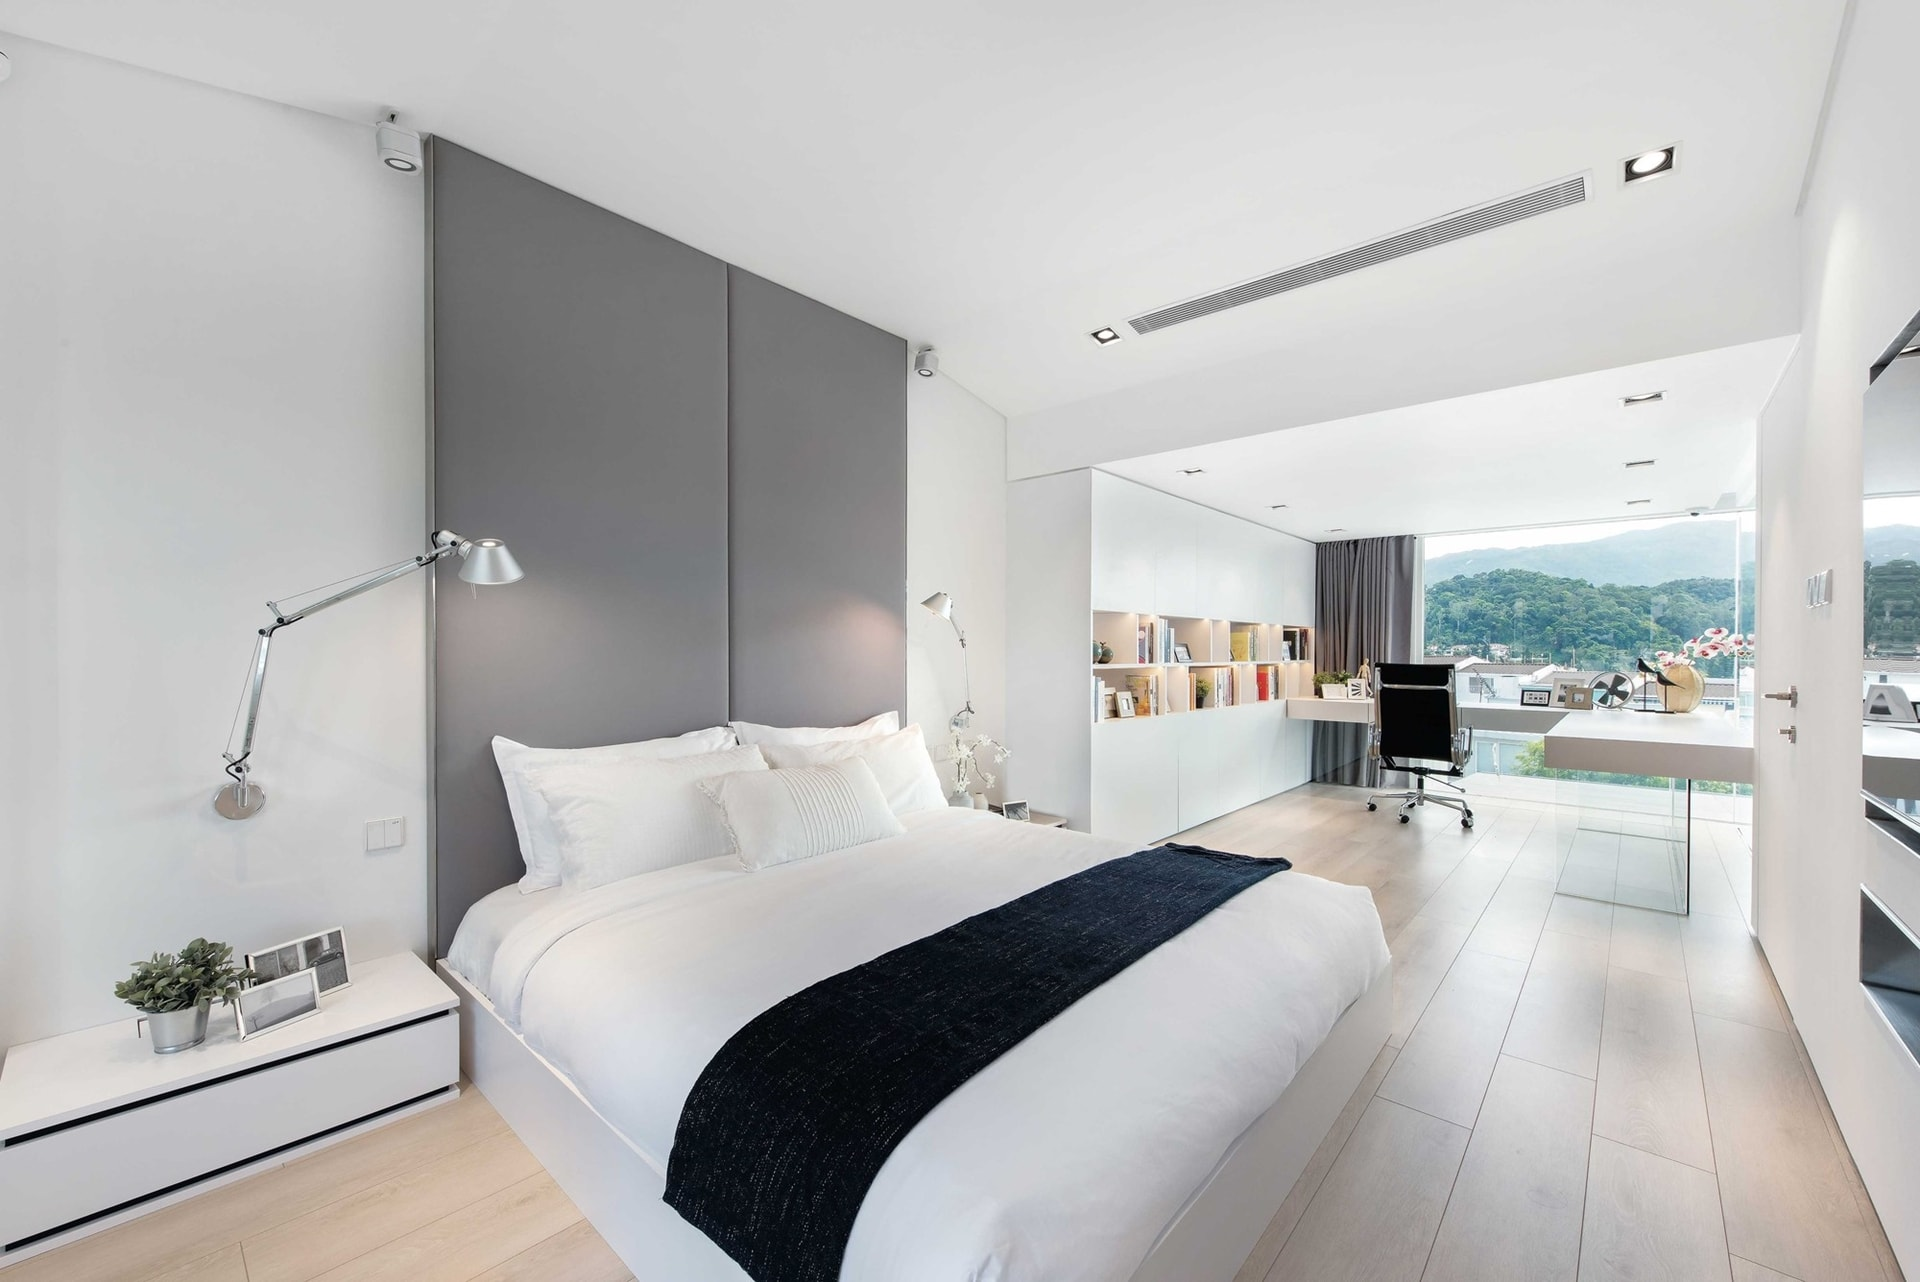 Courtesy Of Millimeter Interior Design Minimalist Bedroom In Modern Minimalist  House By Millimeter Interior Design